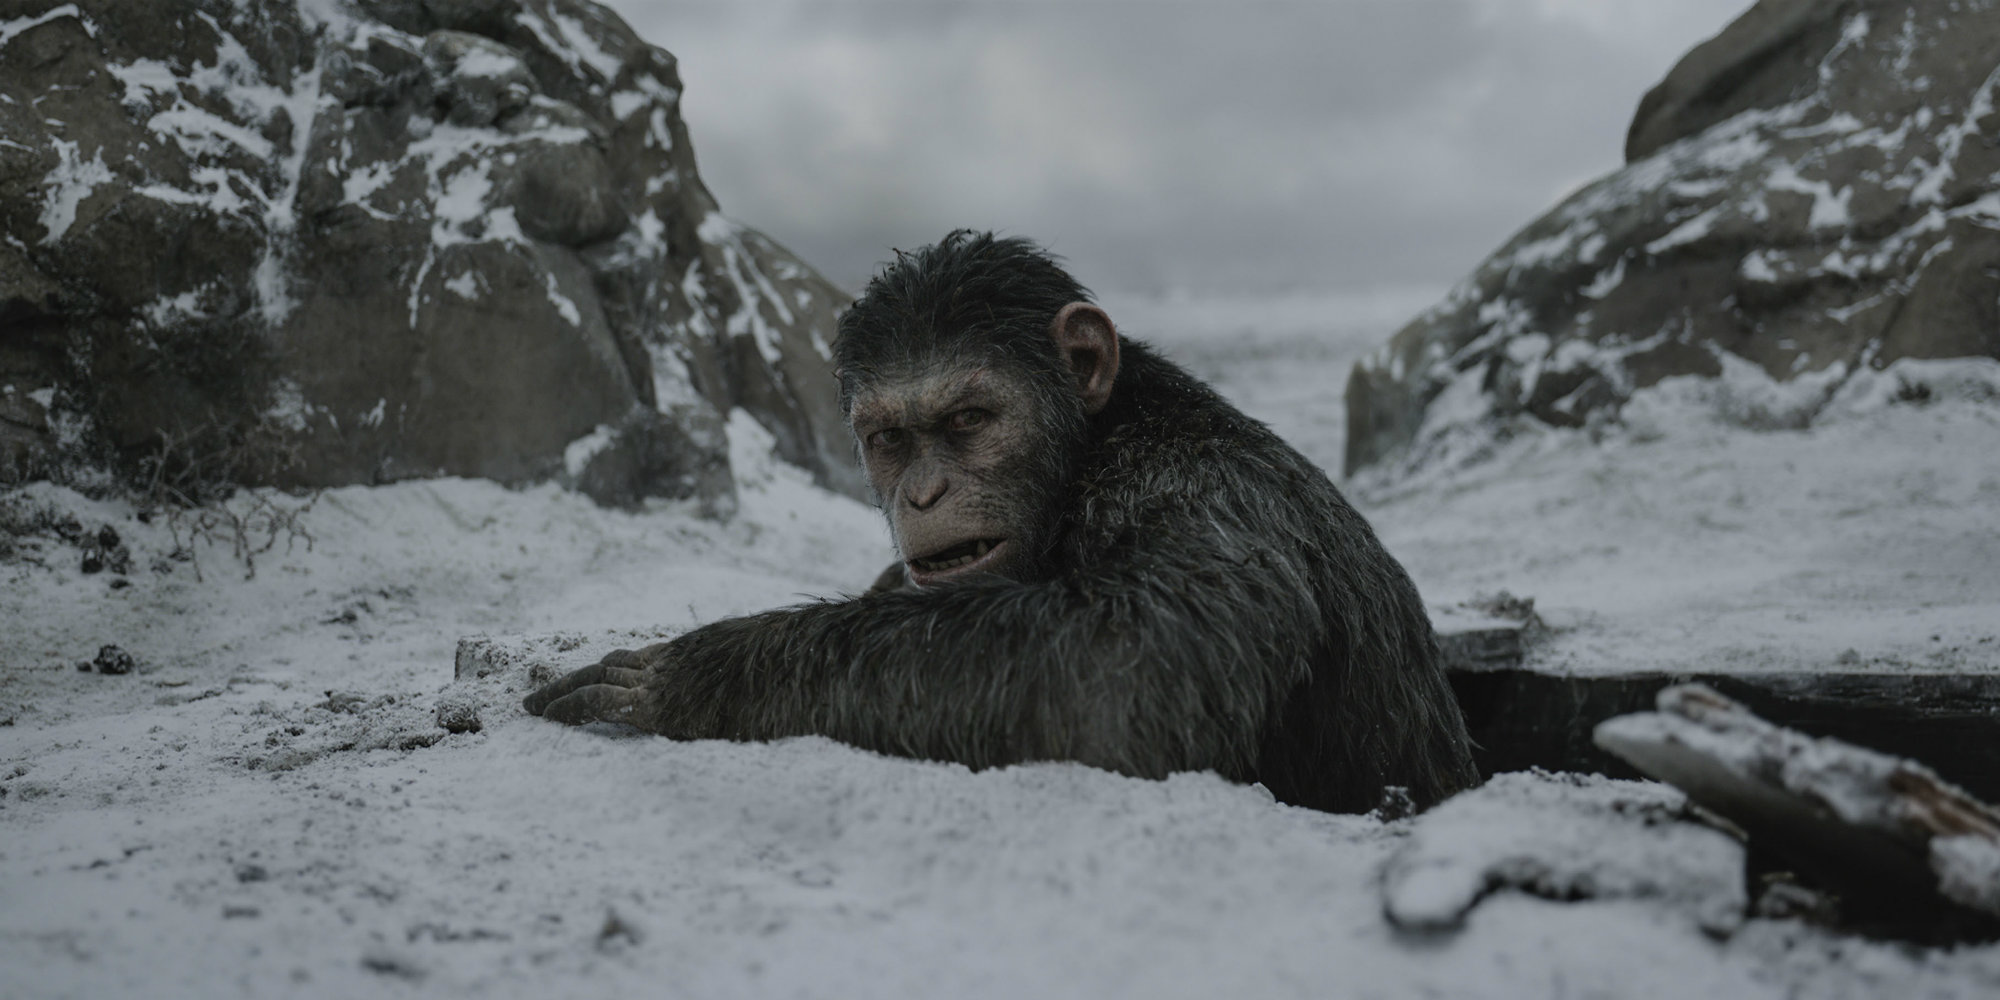 Planet of the Apes 3 Ends Caesar's Story | Screen Rant